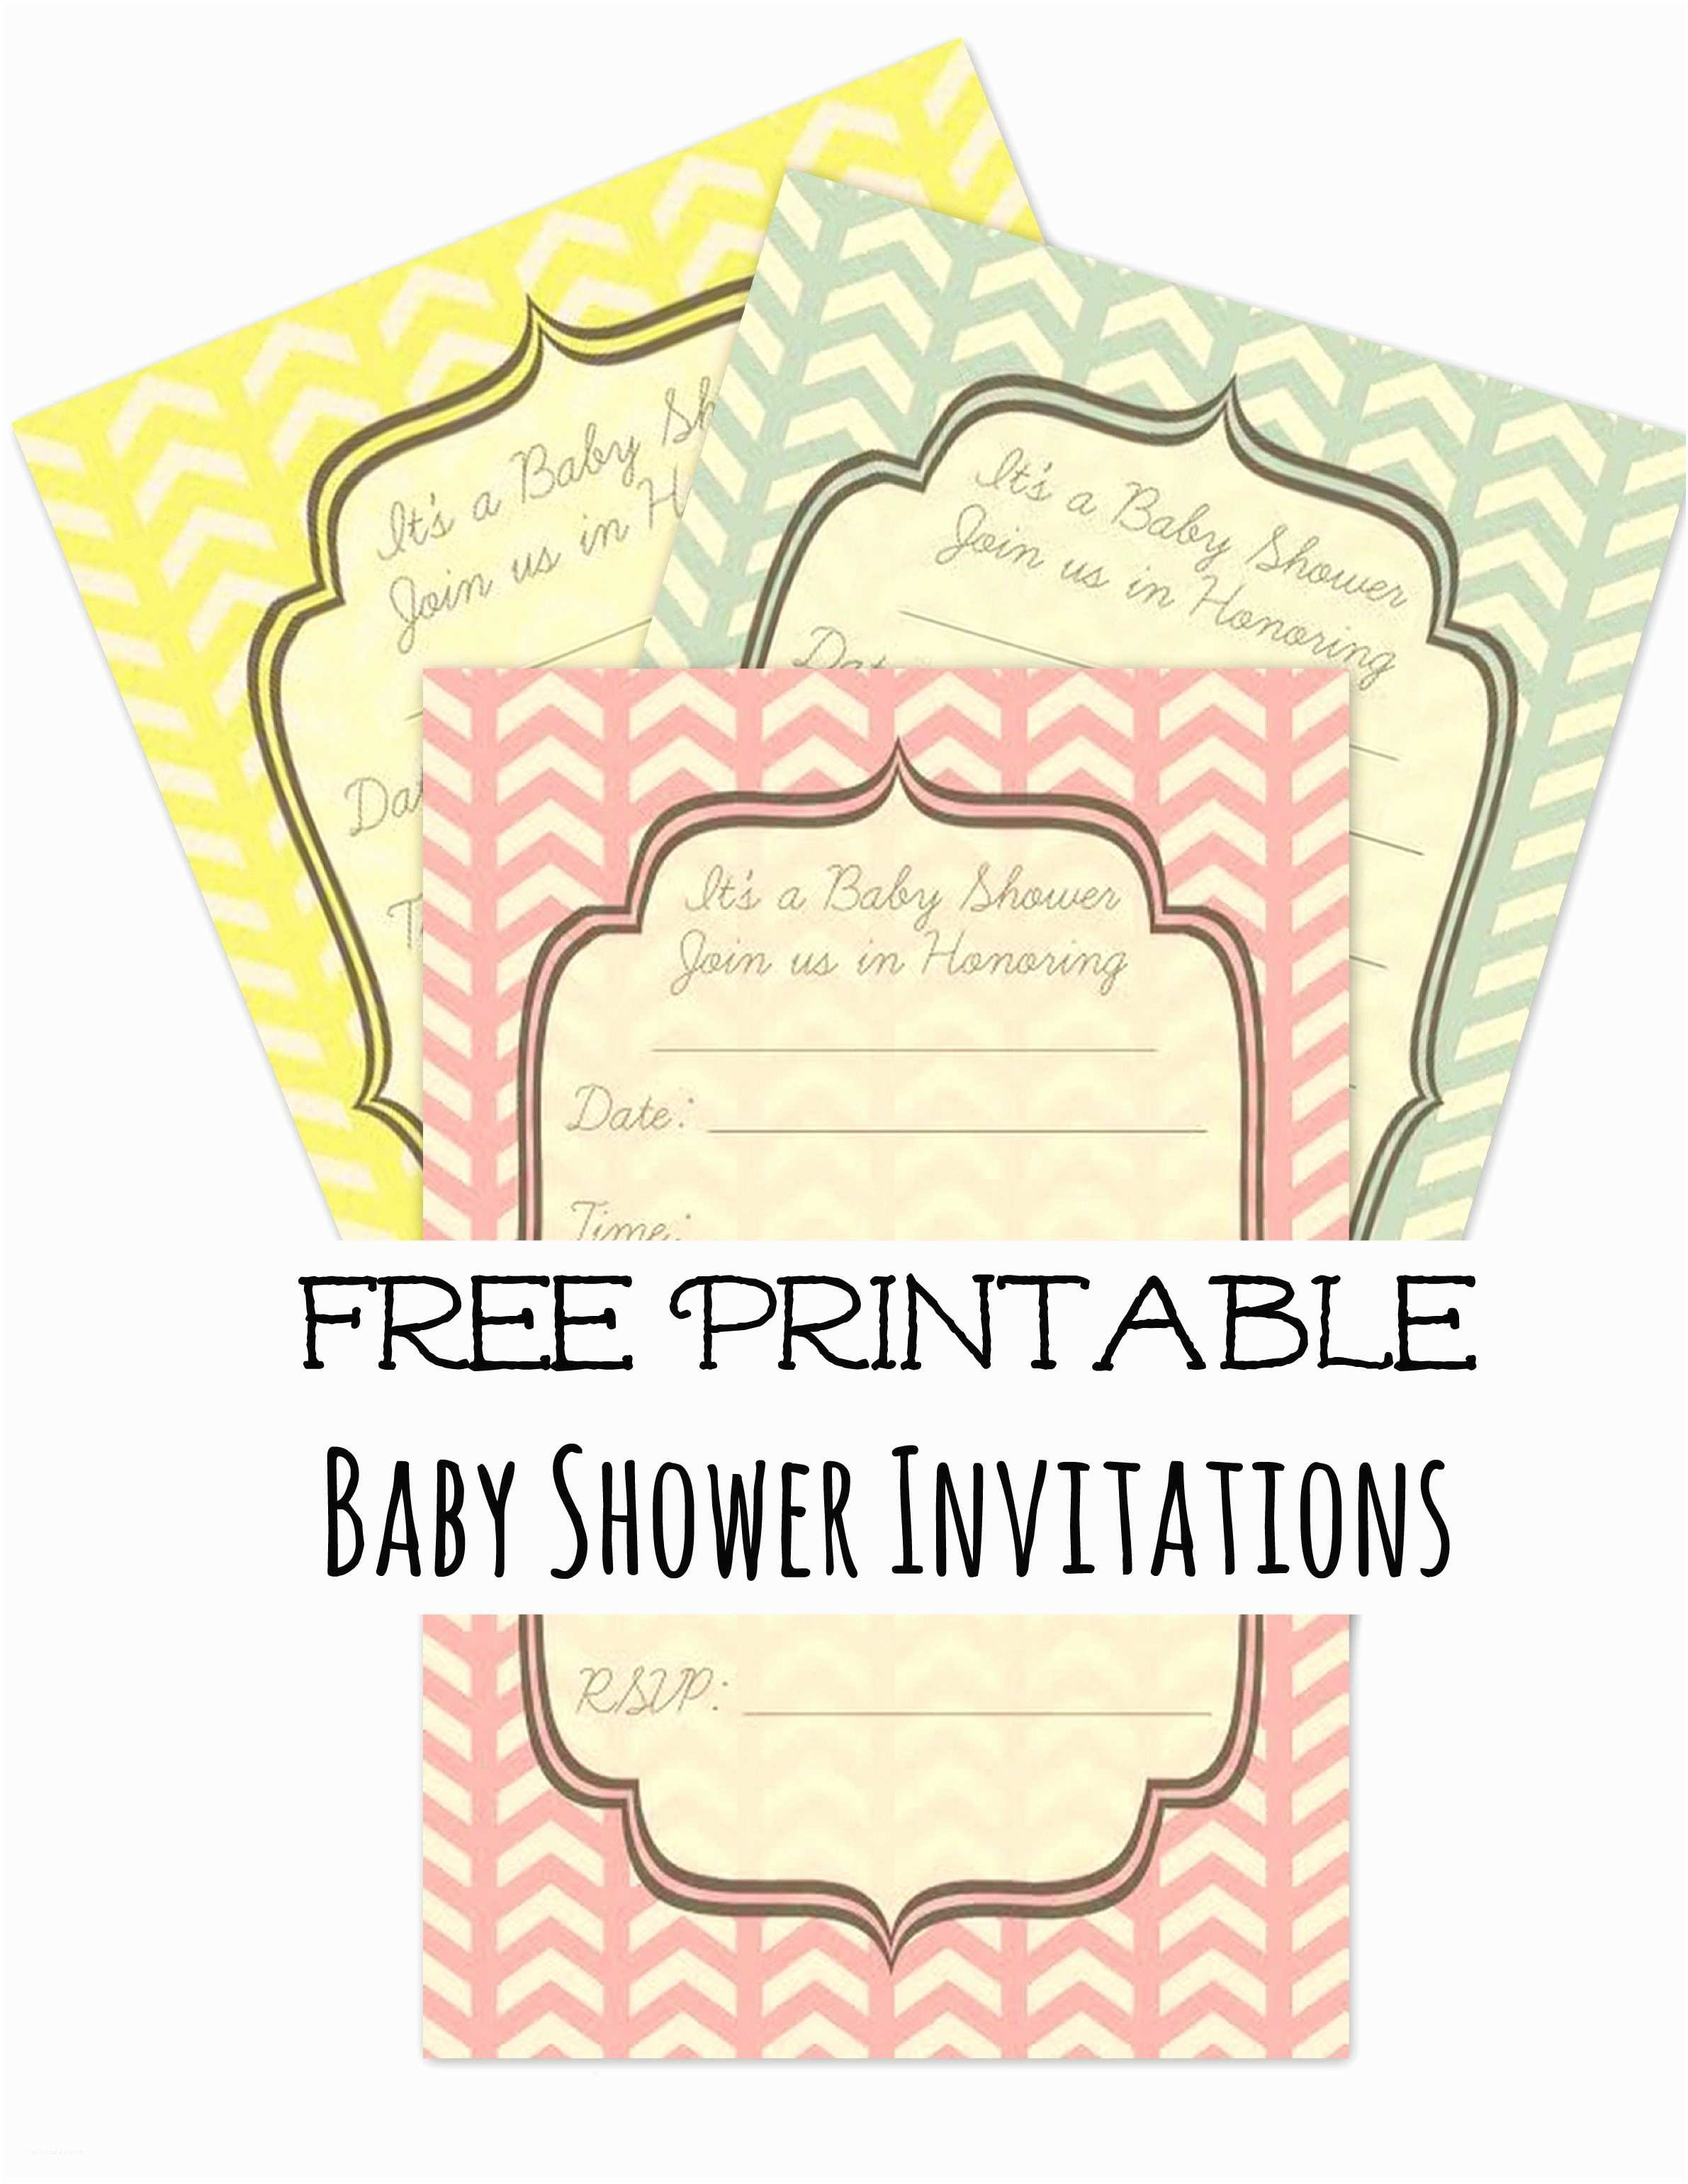 Free Baby Shower Invitation Templates Baby Shower Invitation Free Baby Shower Invitation